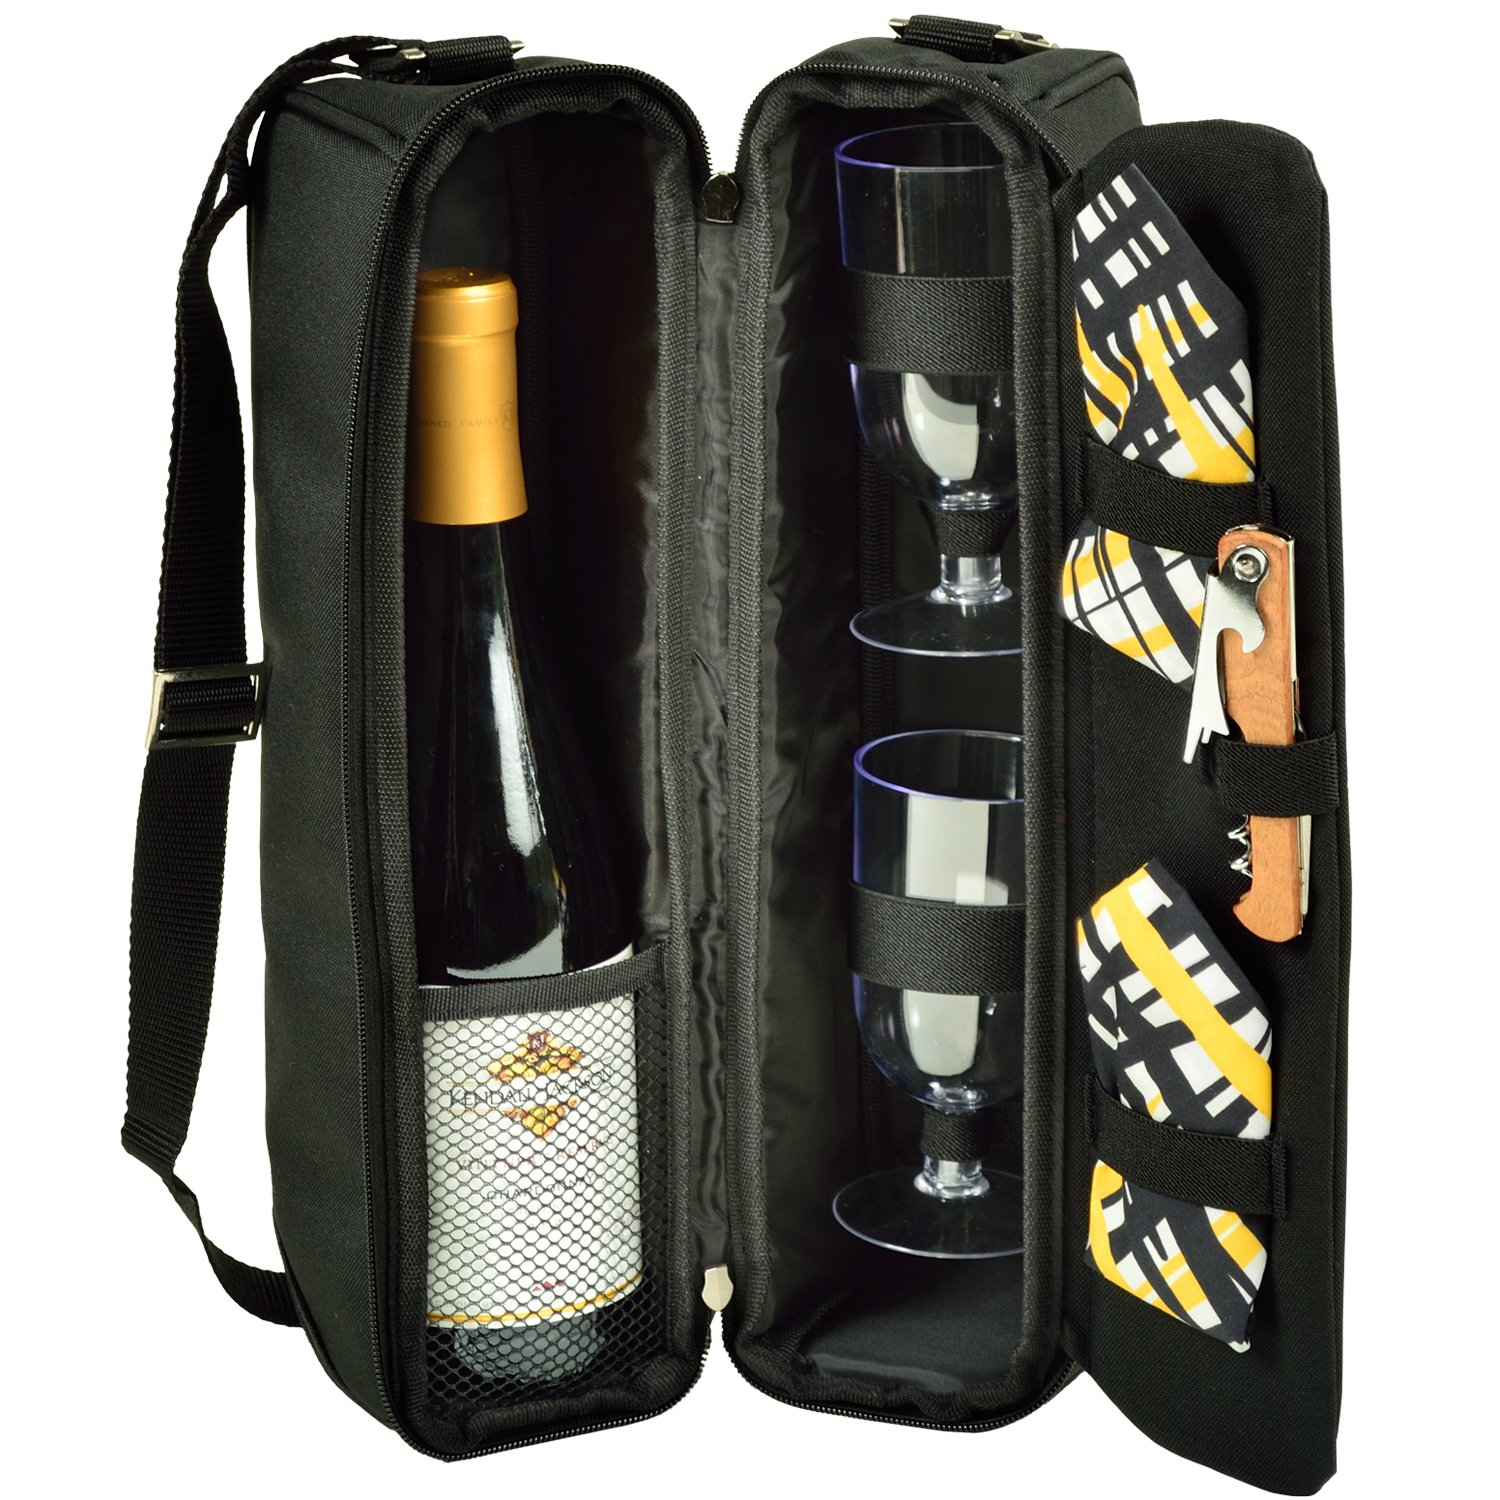 Picnic at Ascot - Deluxe Insulated Wine Tote with 2 Wine Glasses, Napkins and Corkscrew - Black 133-BLK